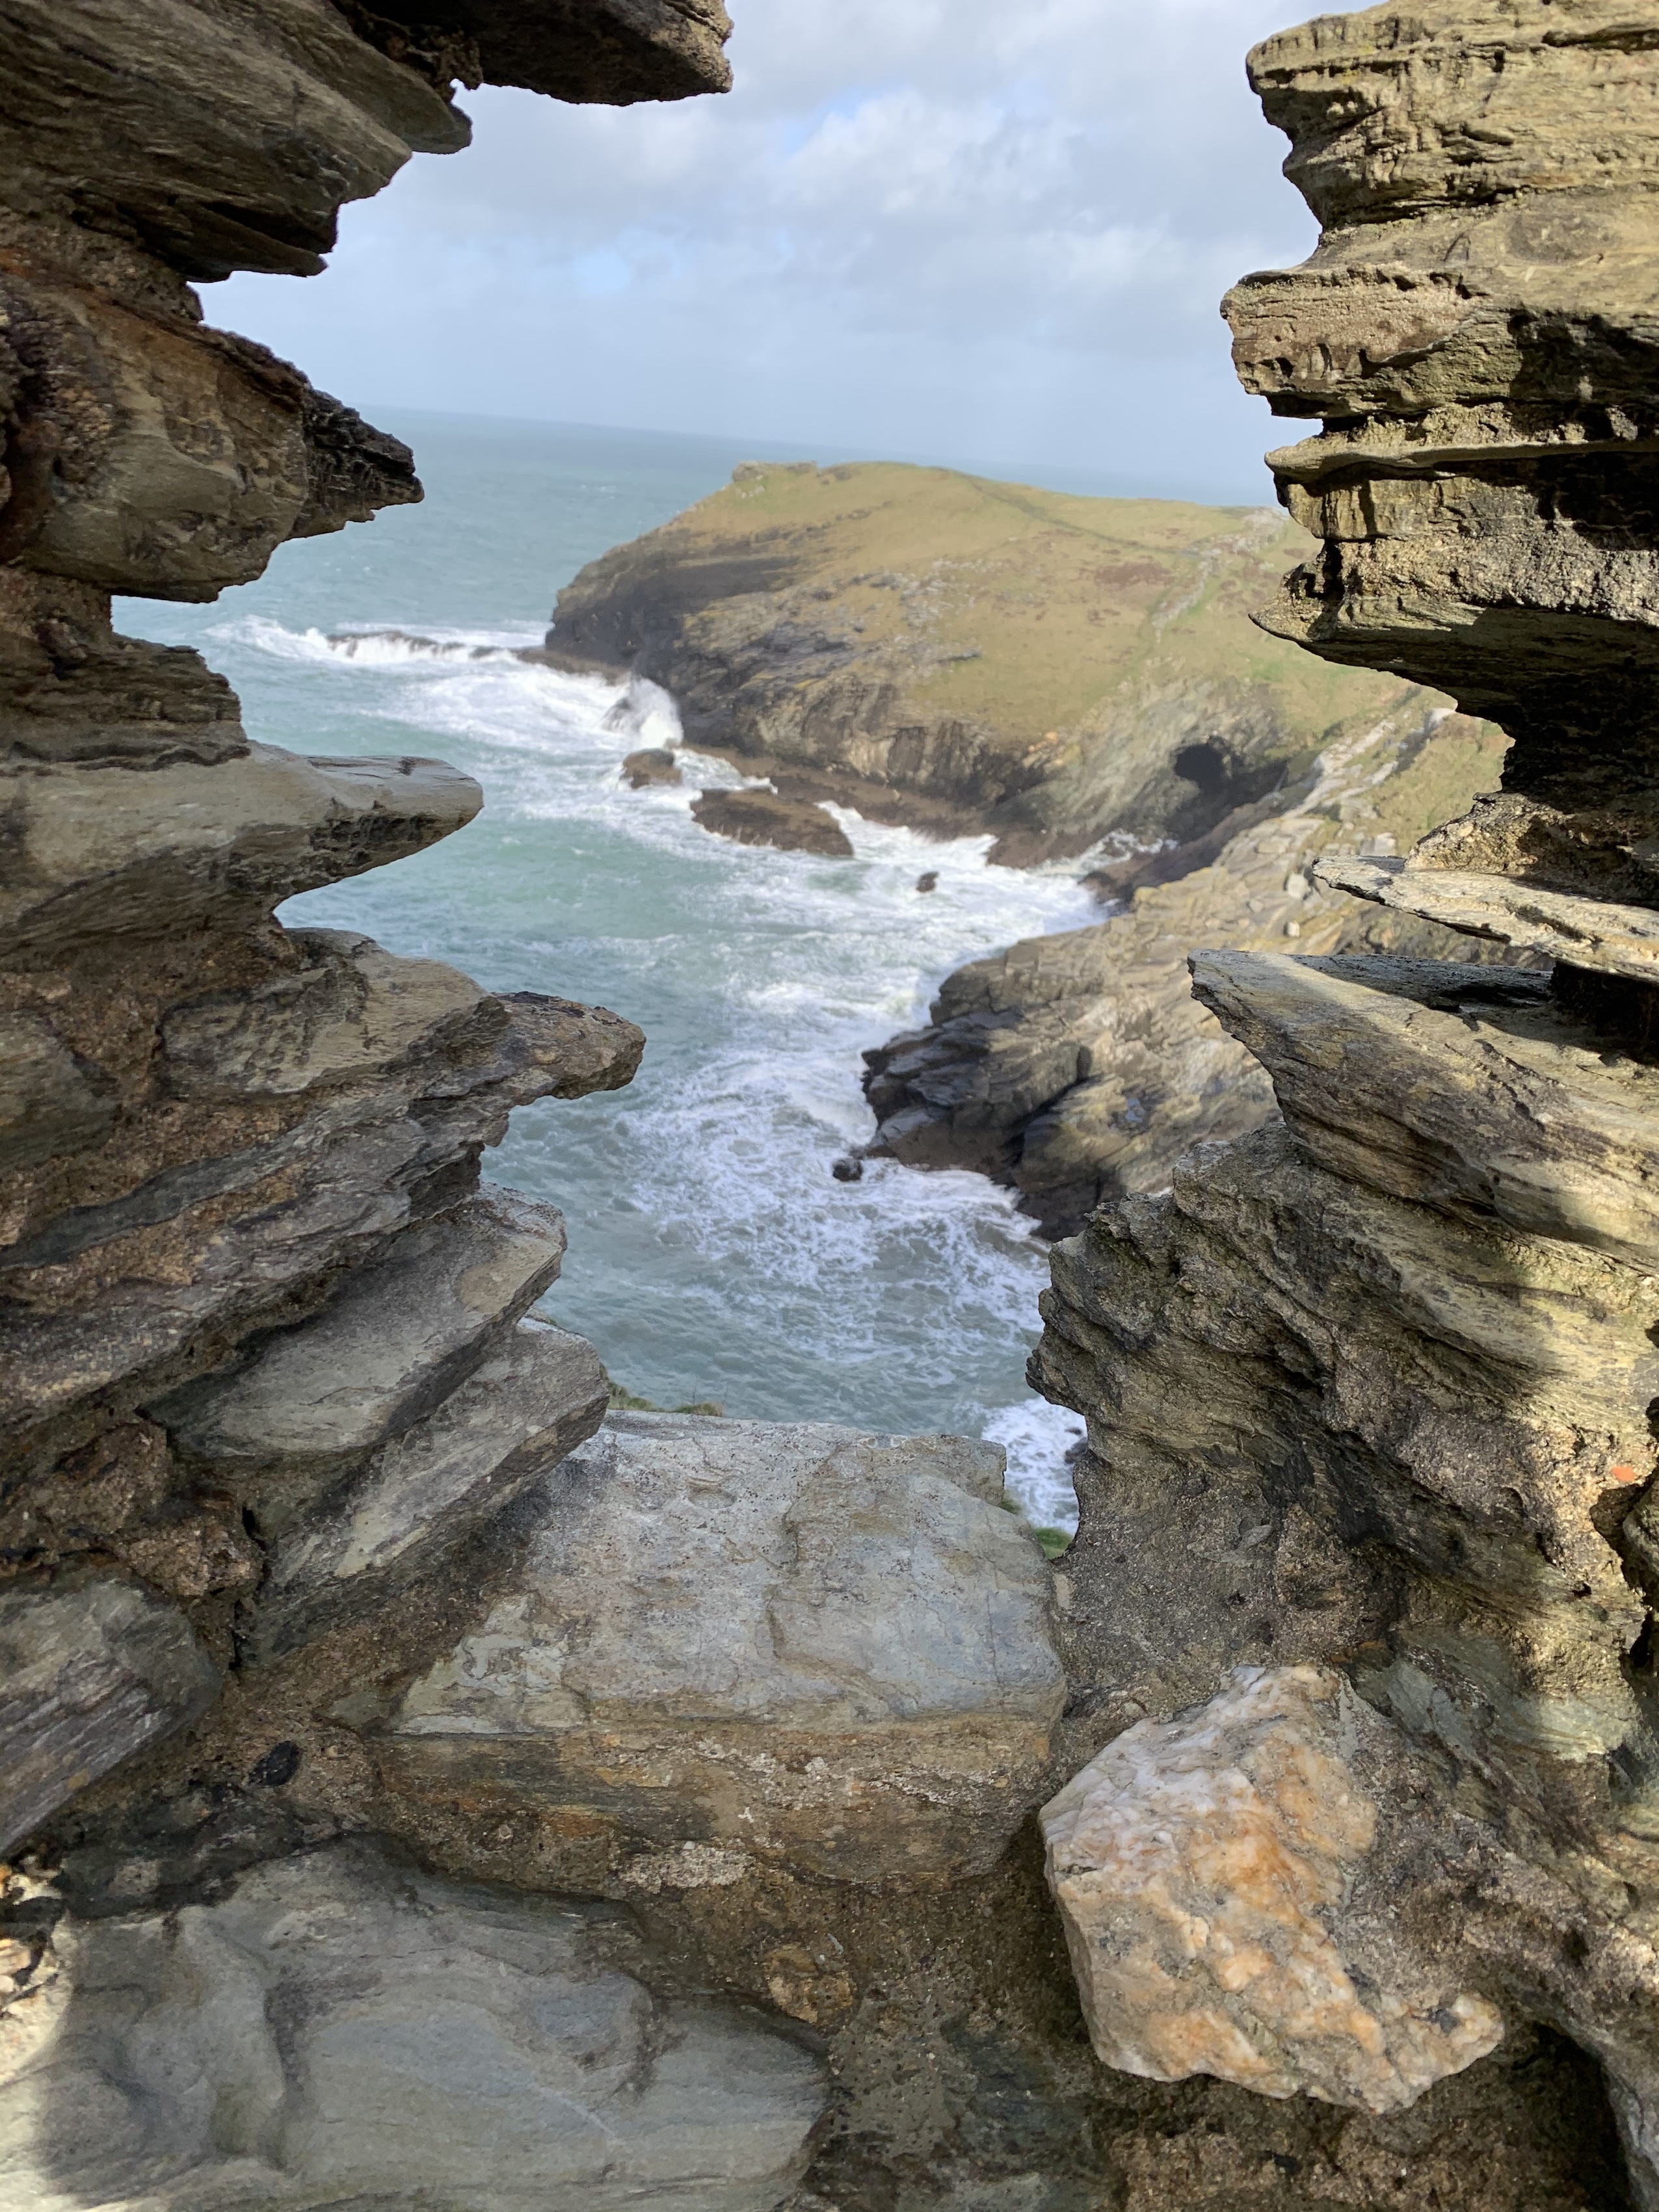 Looking out to sea from Tintagel Castle on The South West Coast Path walk from Boscastle to Tintagel